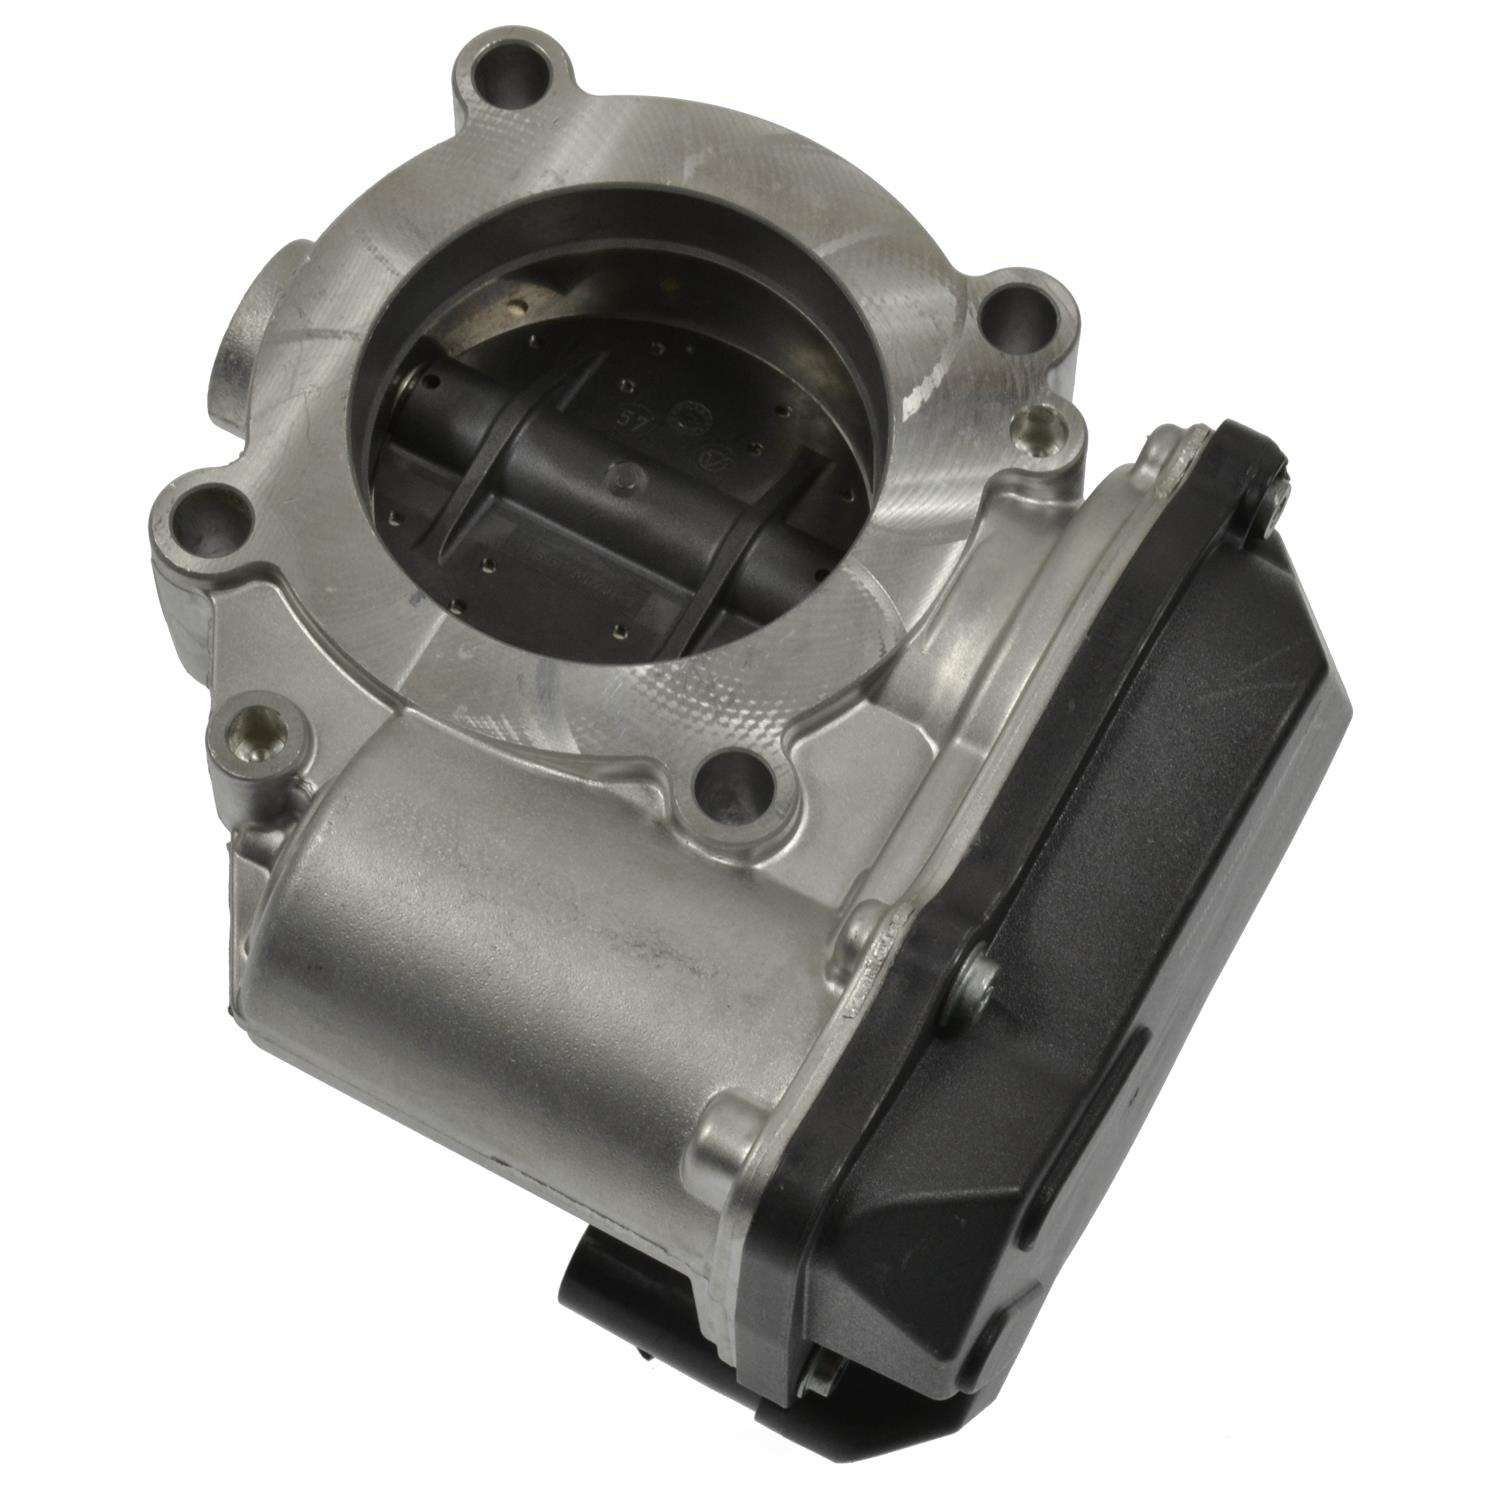 TECHSMART - Fuel Injection Throttle Body Assembly - TCS S20070